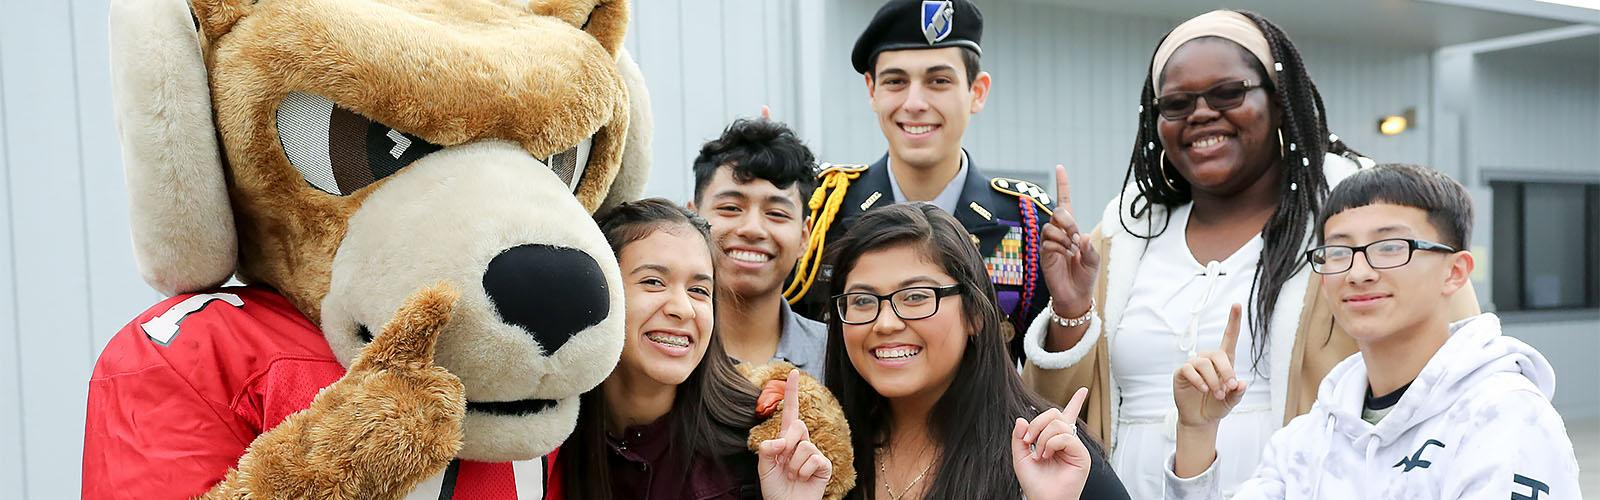 Smiling students with Rocky the Ram mascot